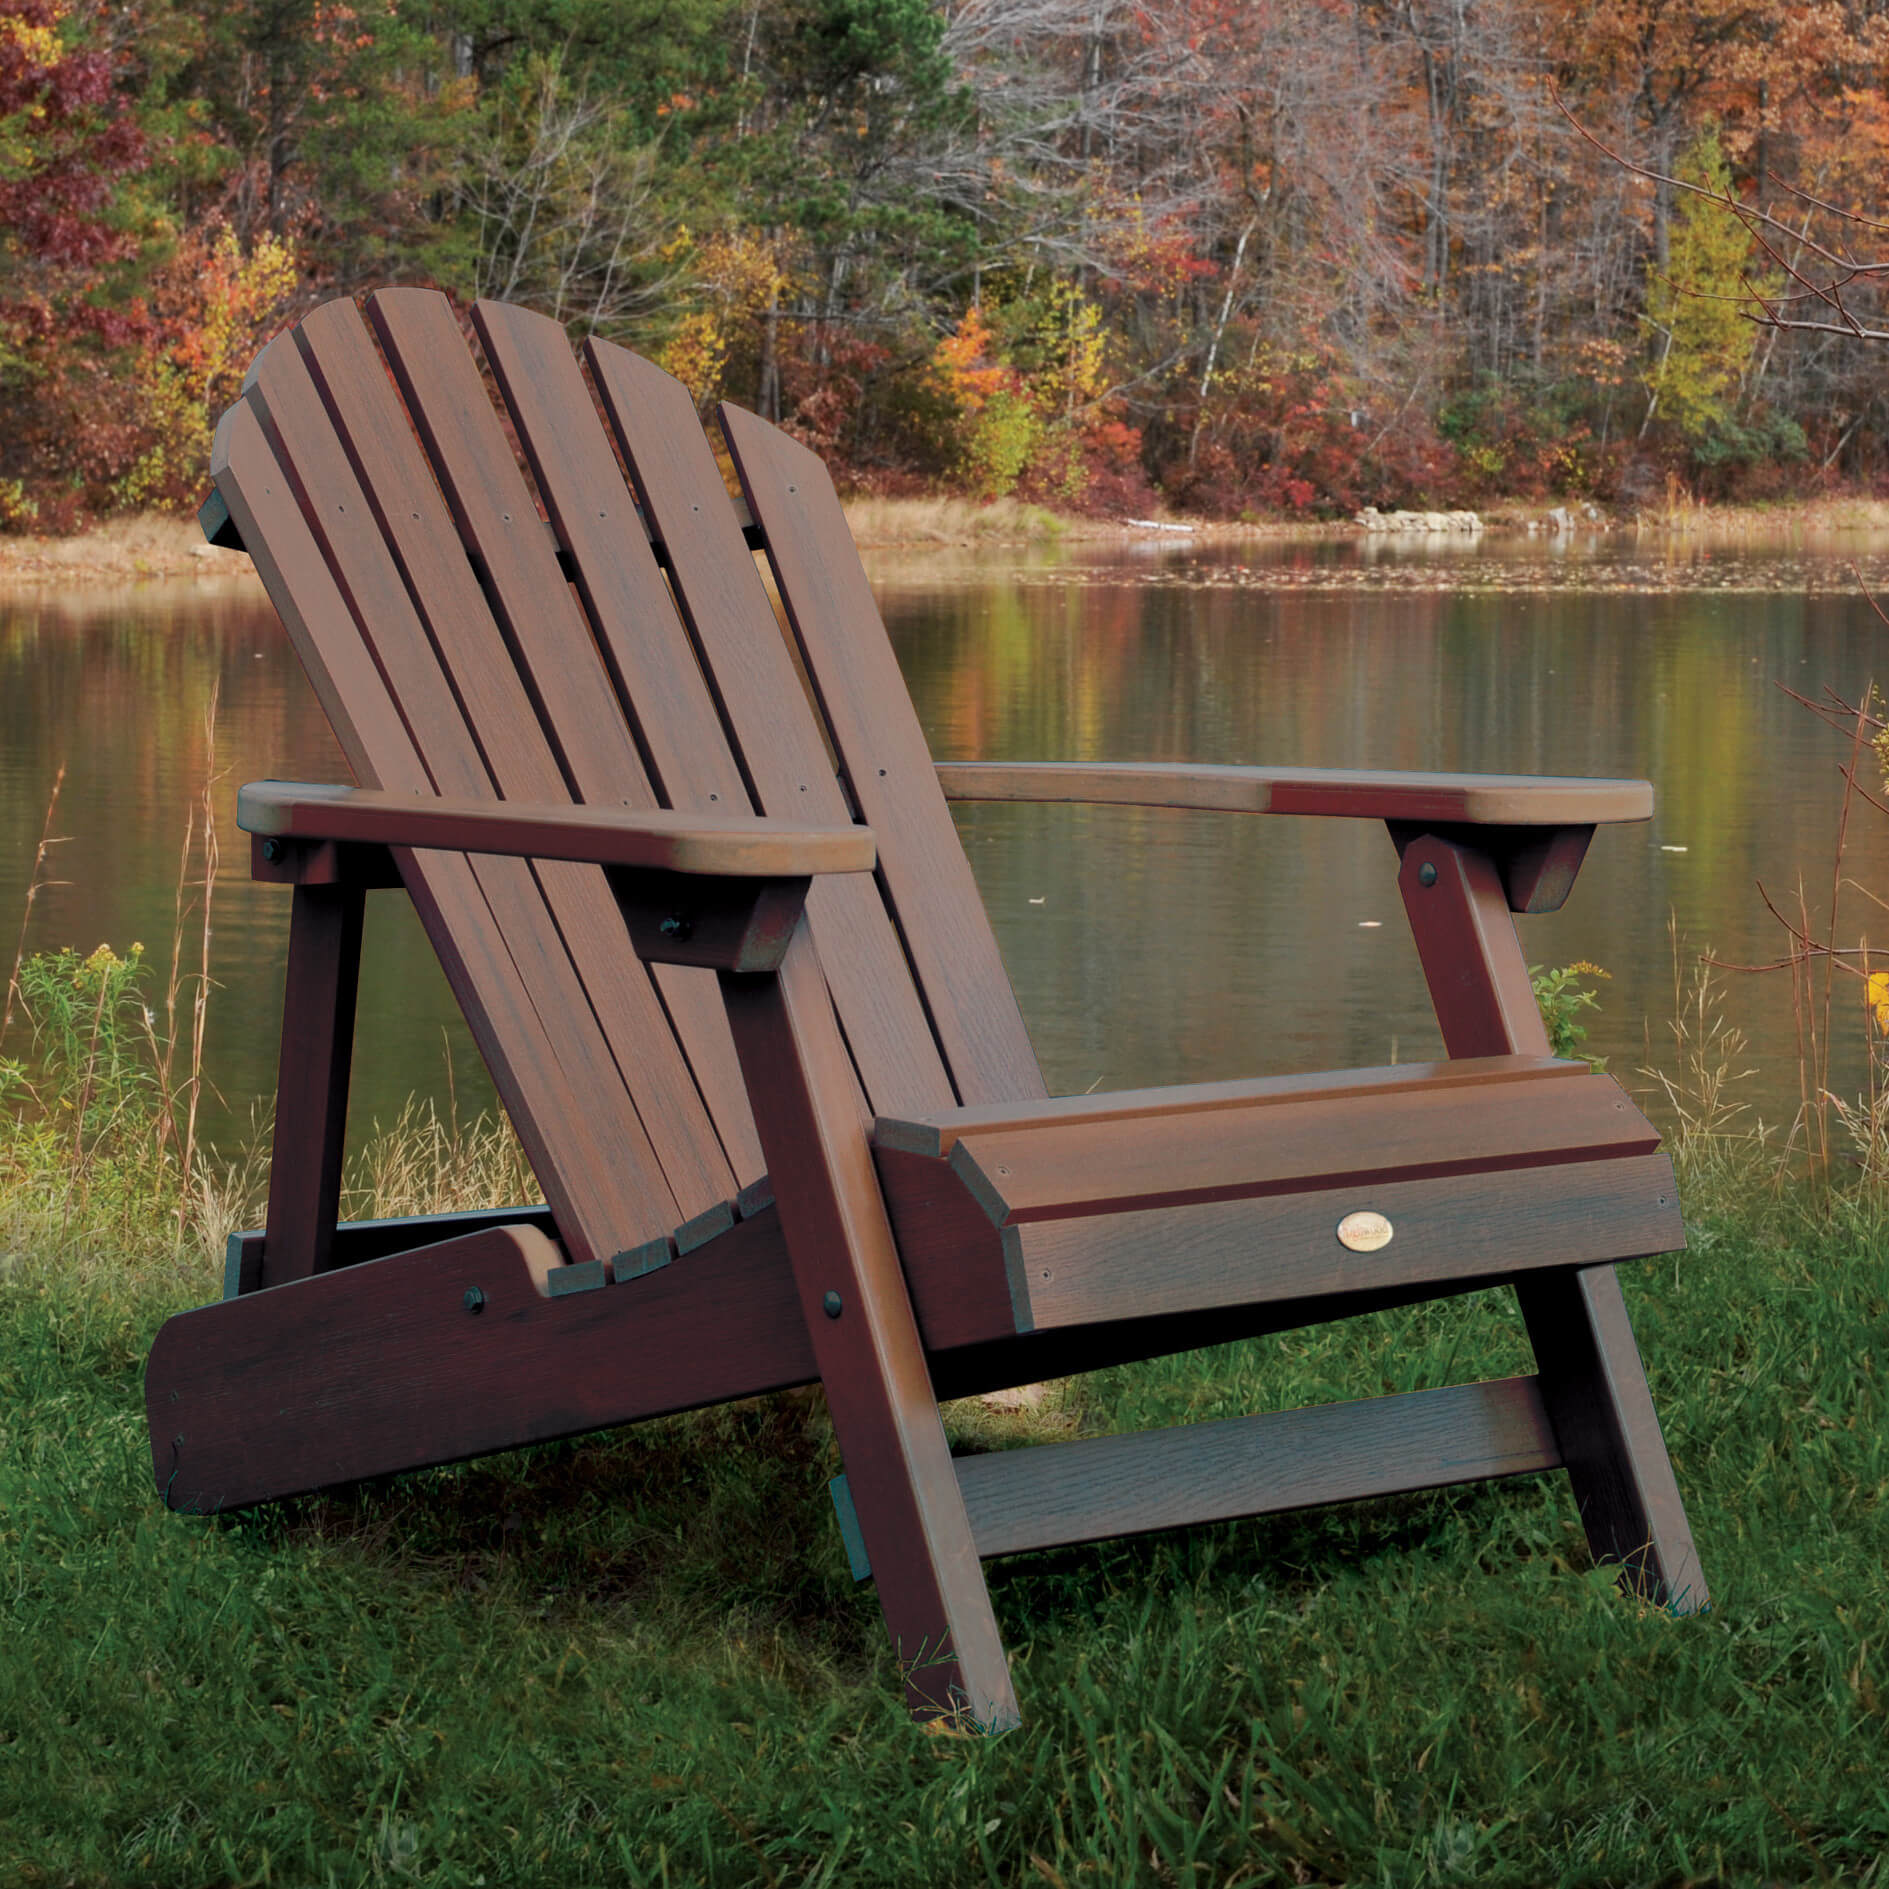 Reclining Wooden Adirondack Chair & How to Build a Wooden Pallet Adirondack Chair (Step-by-Step Tutorial) islam-shia.org